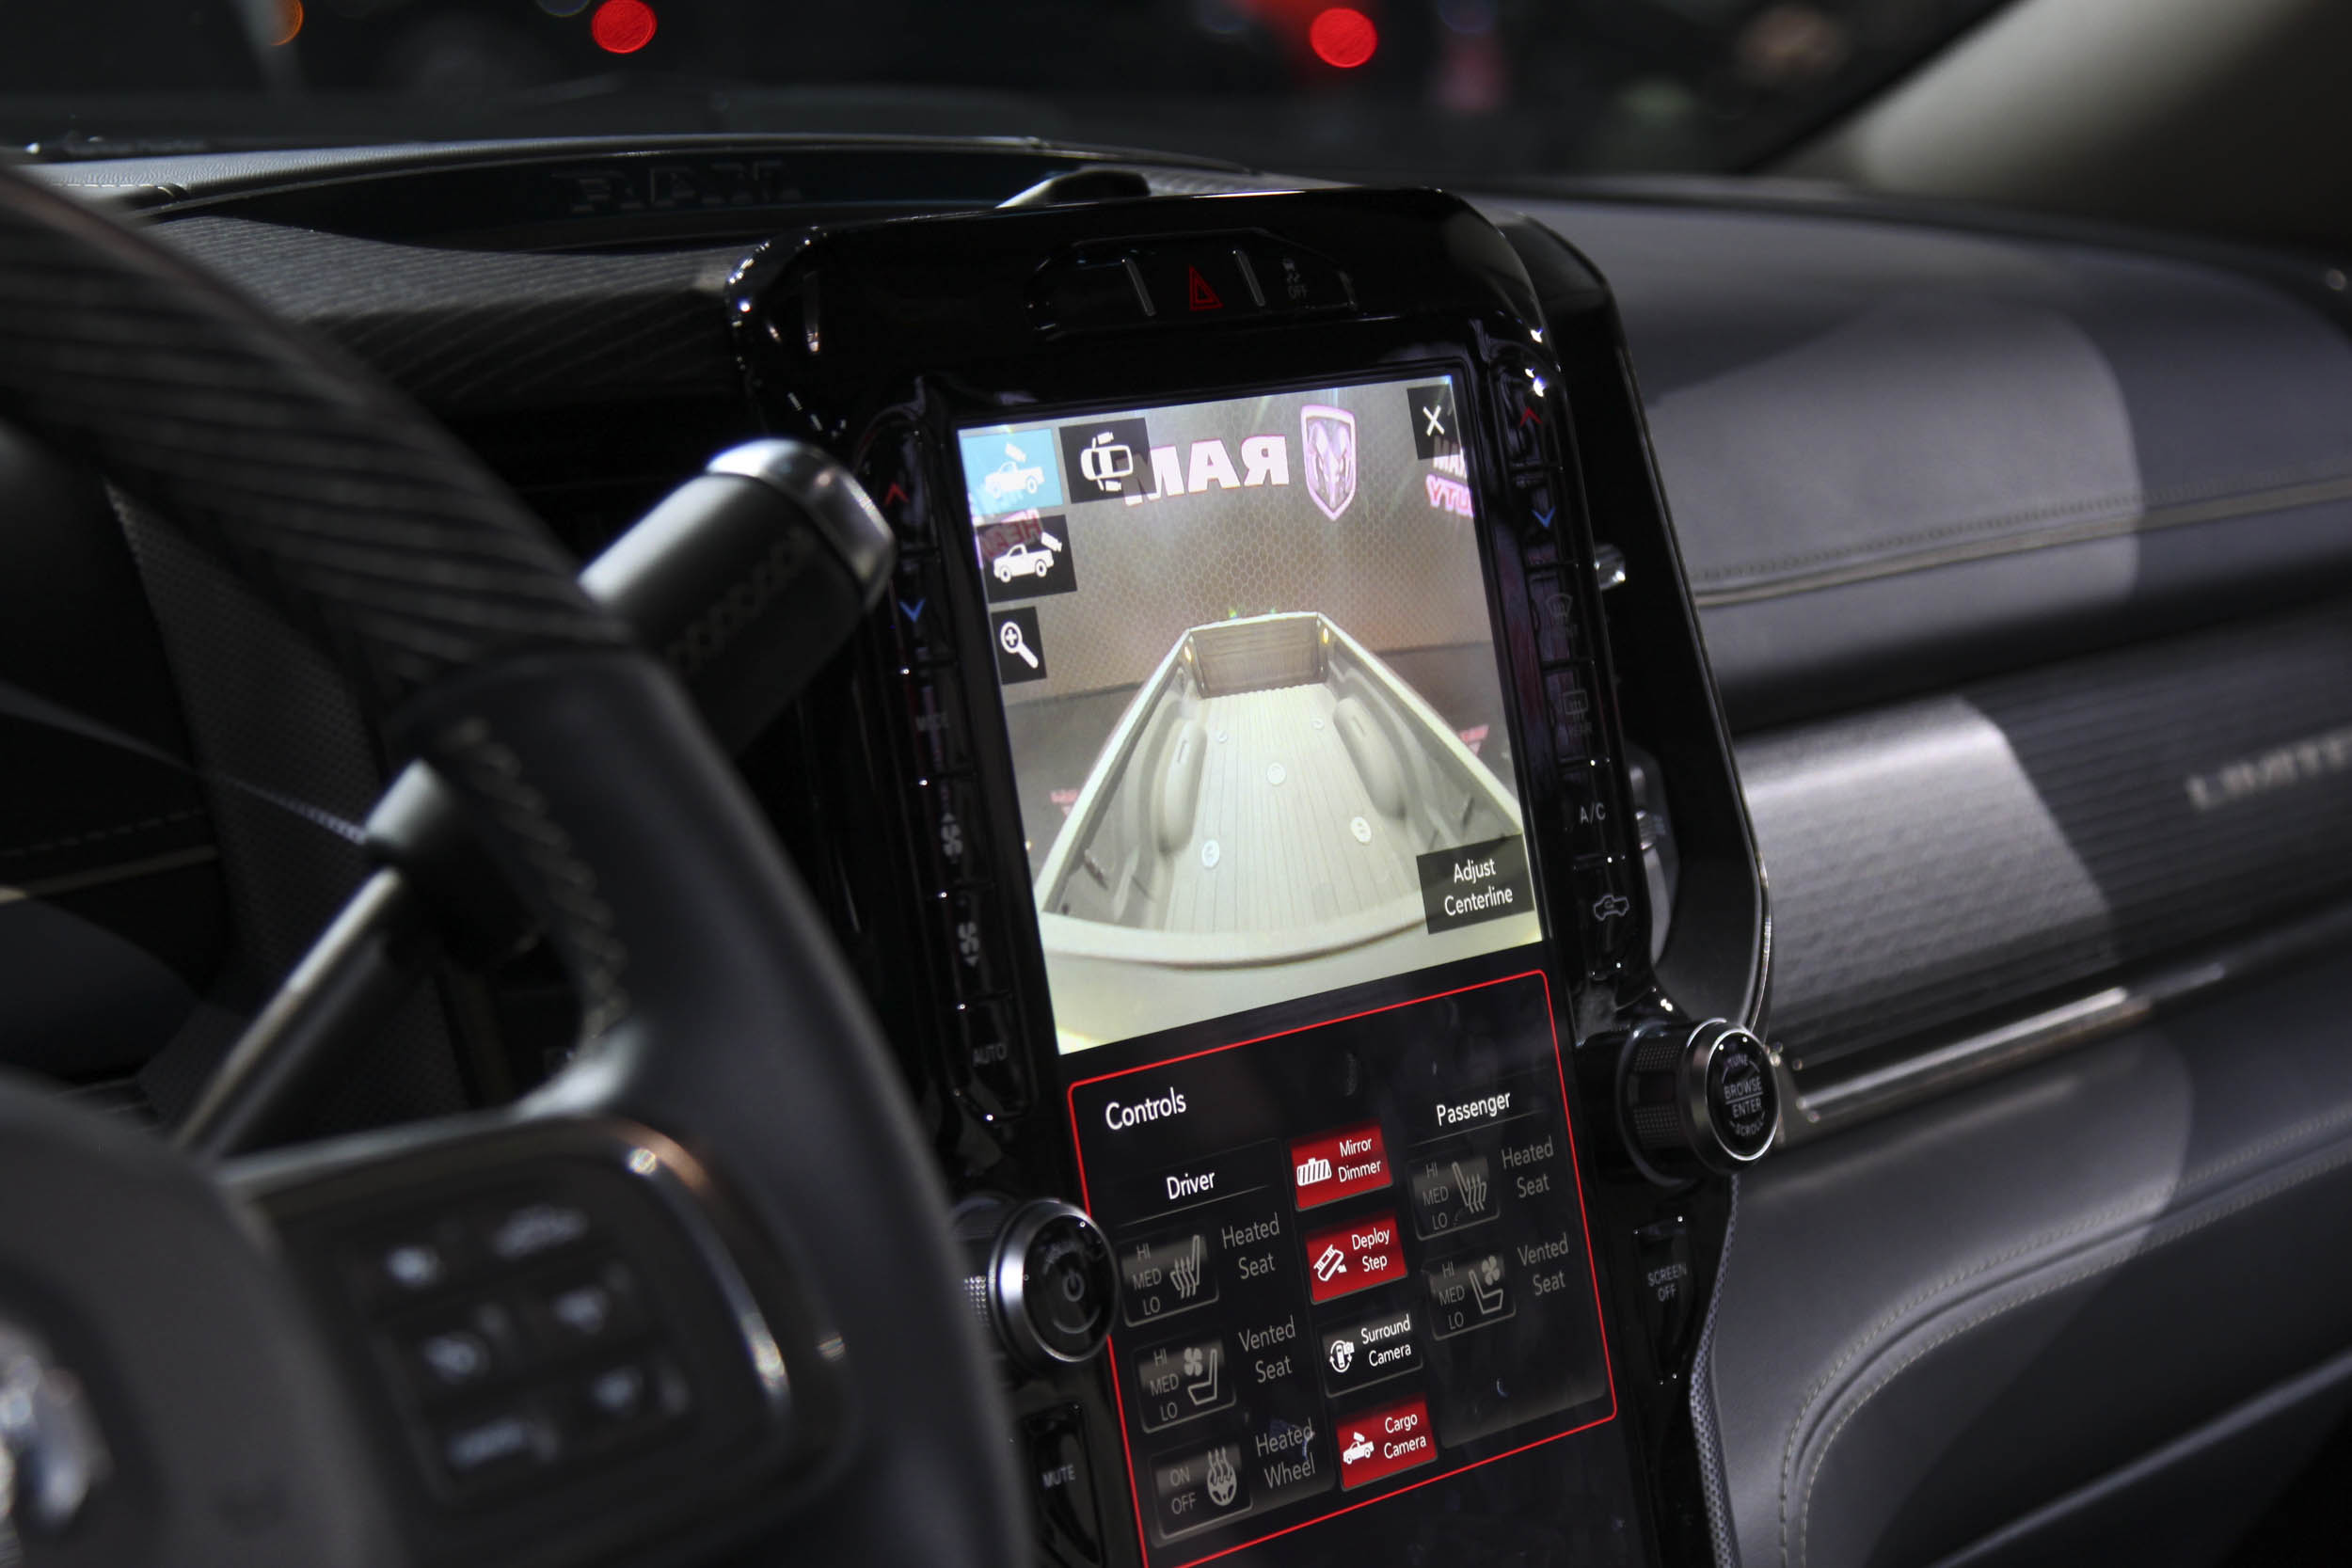 The large center screen combined with the bed view camera are set up to make hooking up a gooseneck or 5th wheel easy.